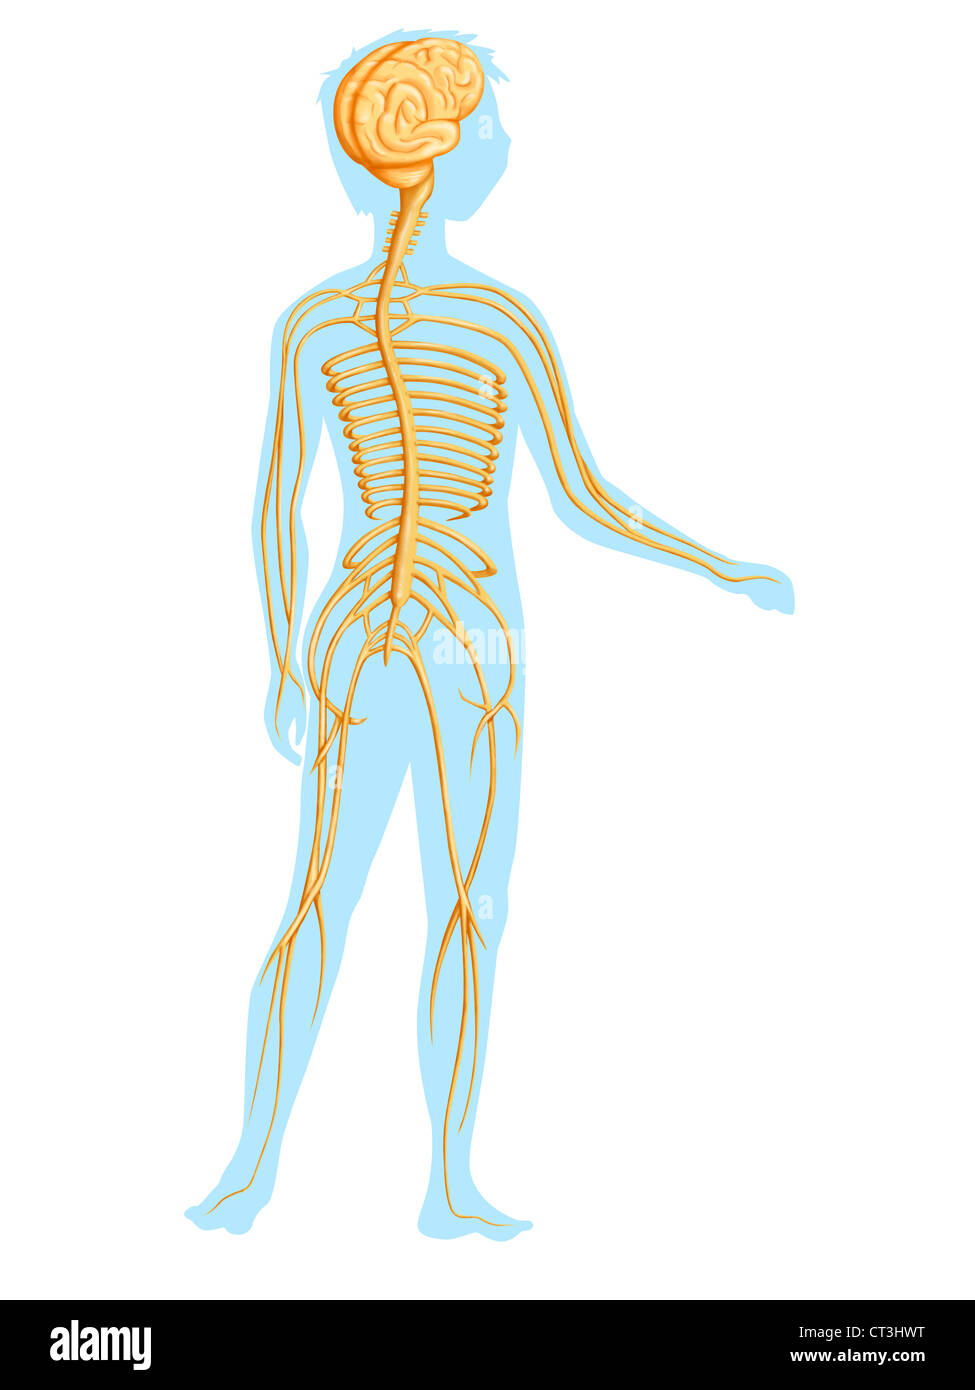 Peripheral Nervous System Drawing Stock Photos Peripheral Nervous